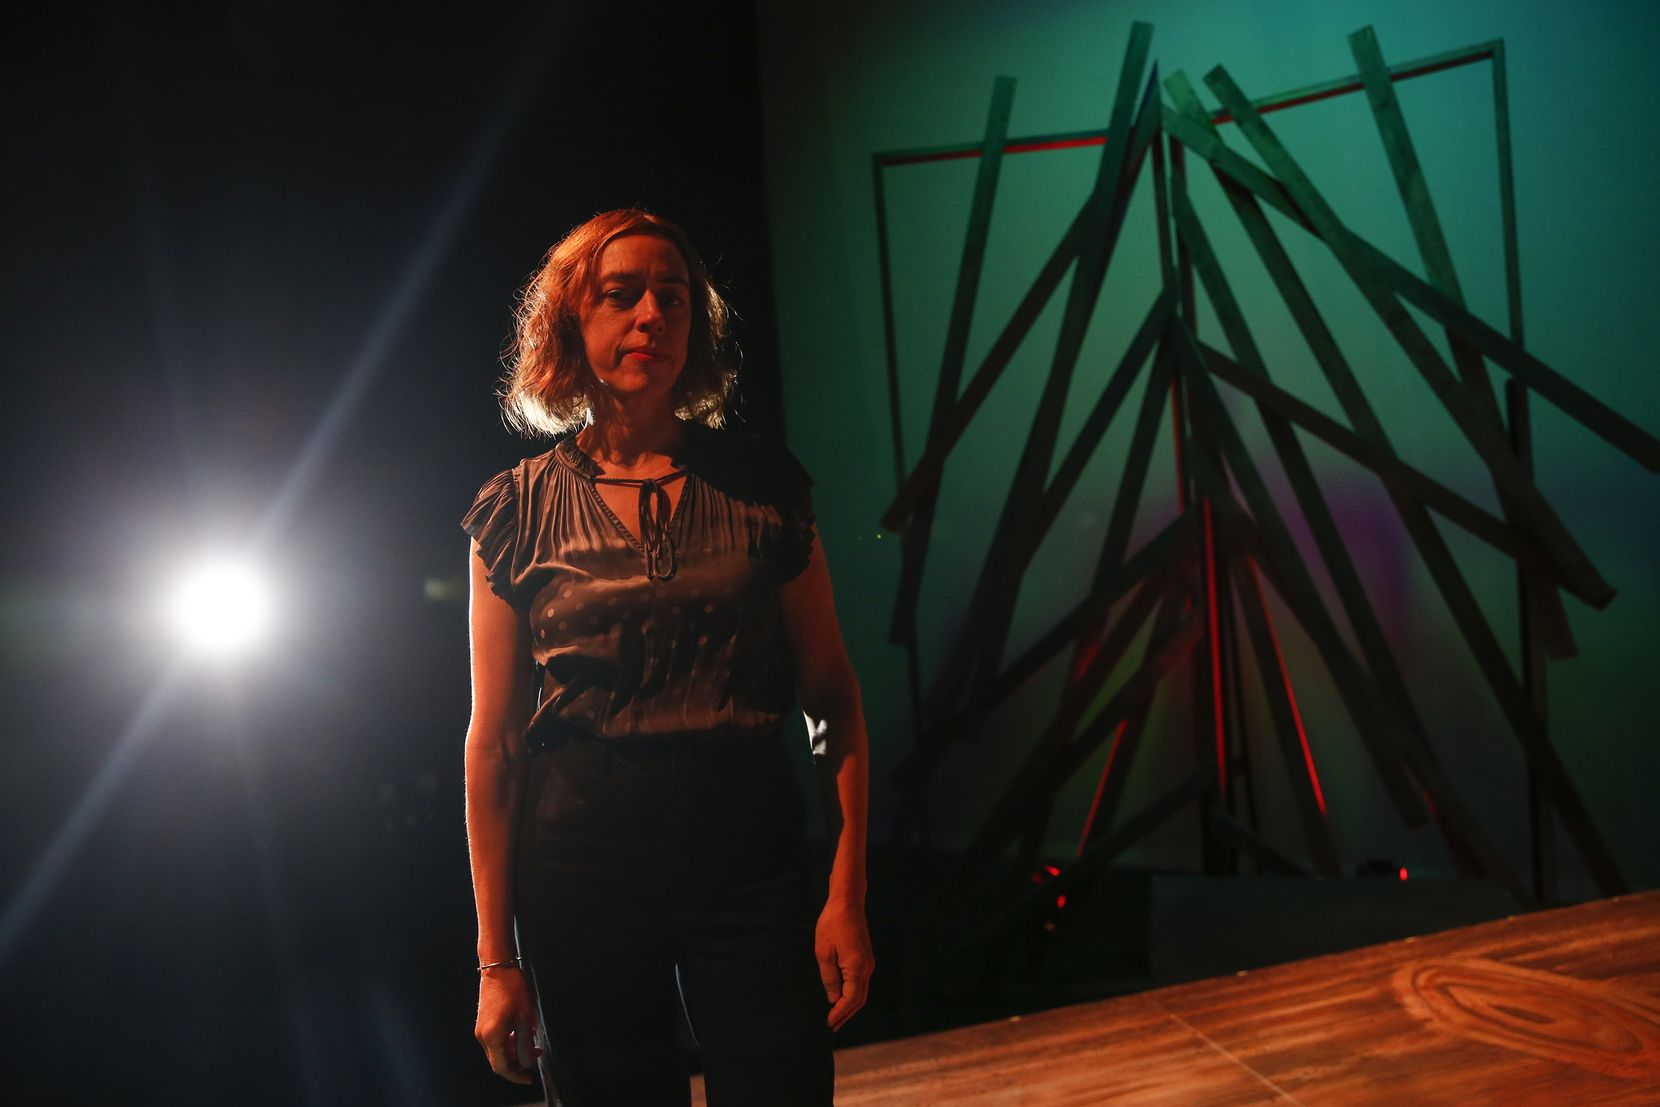 Sara Cardona, executive director of Teatro Dallas, on the stage of the Latino Cultural Center, where her company has found a permanent home. (Ryan Michalesko/The Dallas Morning News)